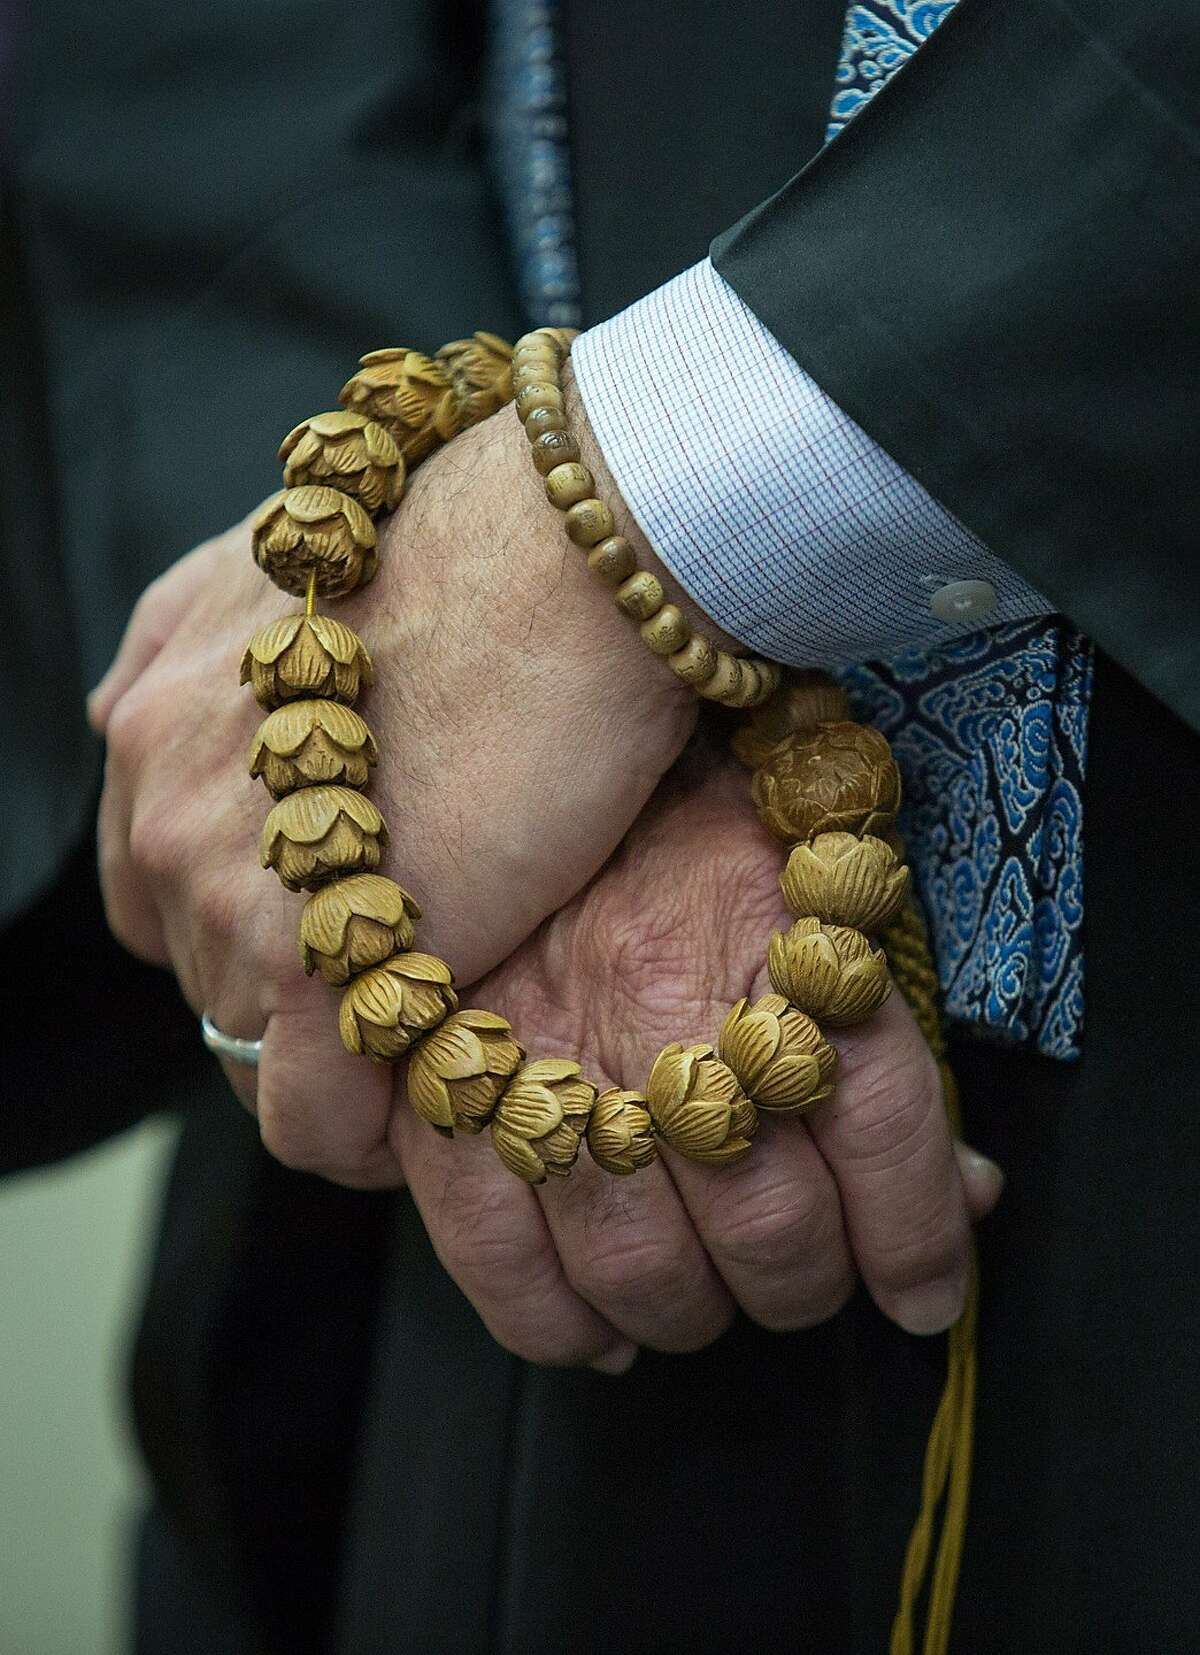 Rev. Ronald K. Kobata of the Buddhist Church of San Francisco holds an onenju, prayer beads, during a moment of silence during a news conference at the National Japanese American Historical Society in Japantown, Tuesday, Dec. 22, 2015, in San Francisco, Calif. Japanese Americans from the Bay Area Day of Remembrance Consortium expressed support and solidarity with the Muslims, Sikh, Arab and South Asian American communities.